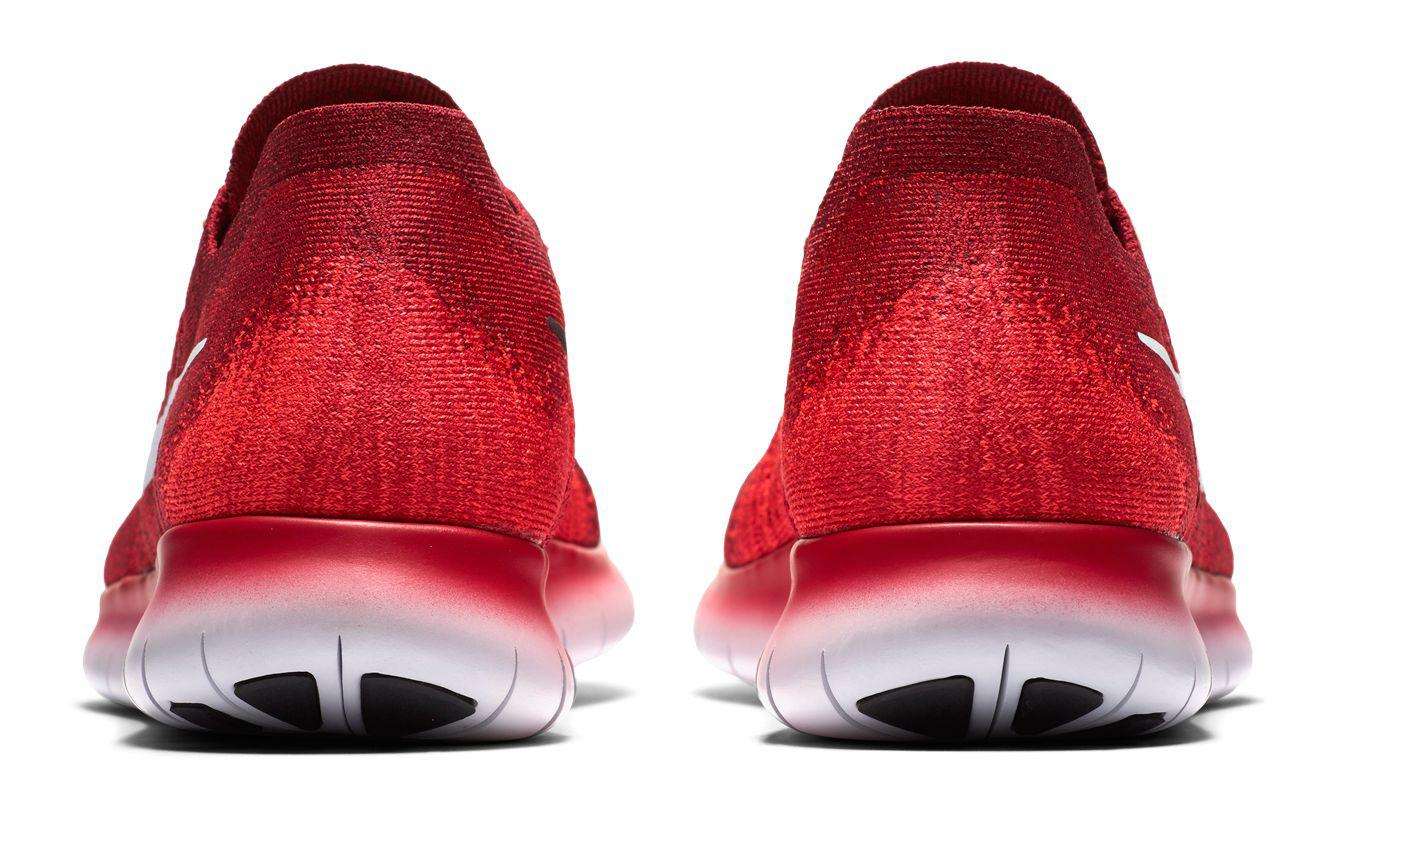 9bab619b571d8 Lyst - Nike Free Rn Flyknit 2017 Running Shoes in Red for Men